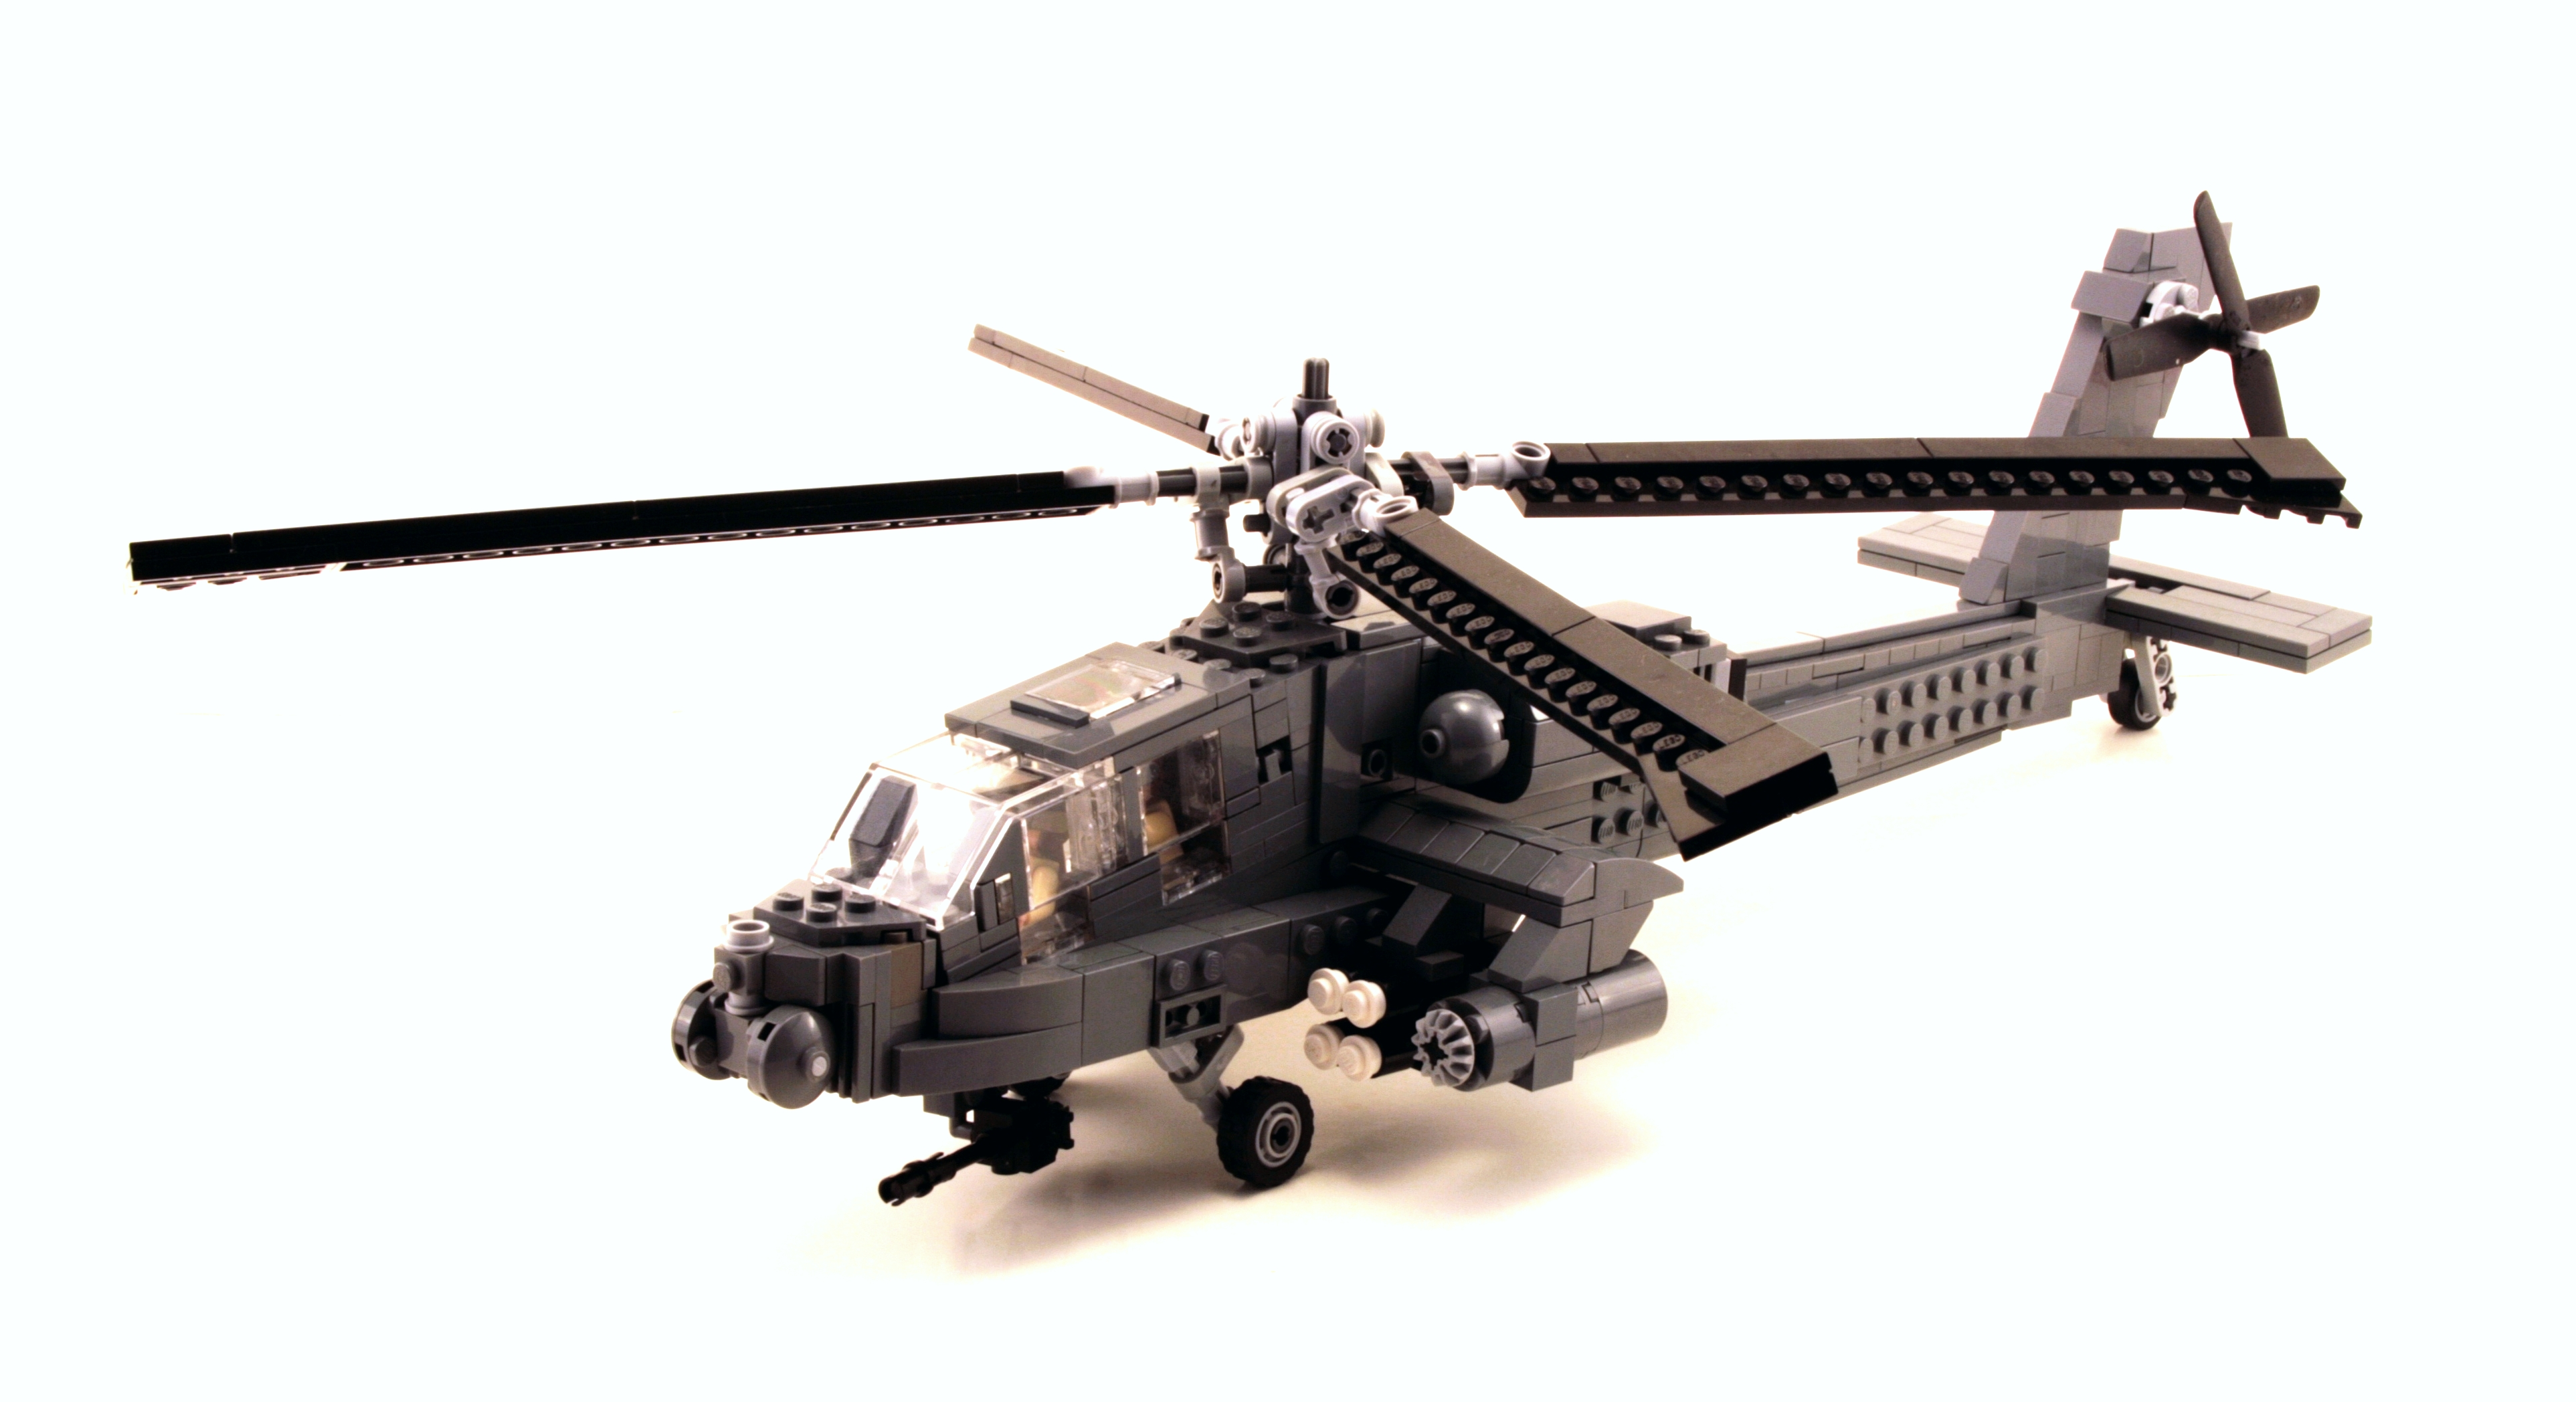 lego helicopter instructions with File Lego Ah 64 Apache on Watch likewise Cargo Plane also Telehandler 42061 together with File LEGO AH 64 Apache furthermore 60049 Helicopter Transporter 0dc0f551e4d14bc490797aee338969bb.